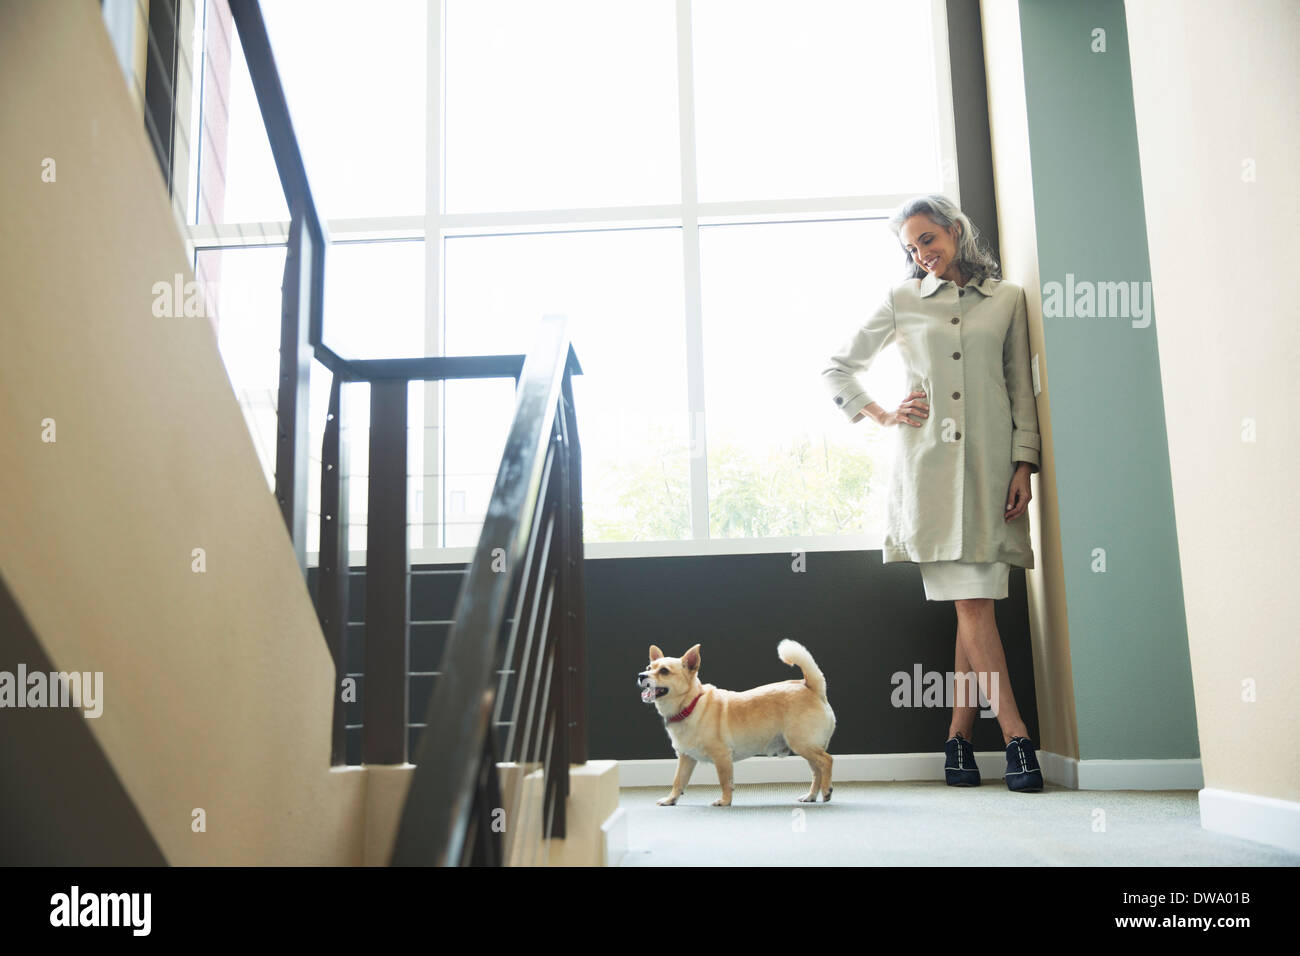 Mature woman and pet dog on stairwell - Stock Image